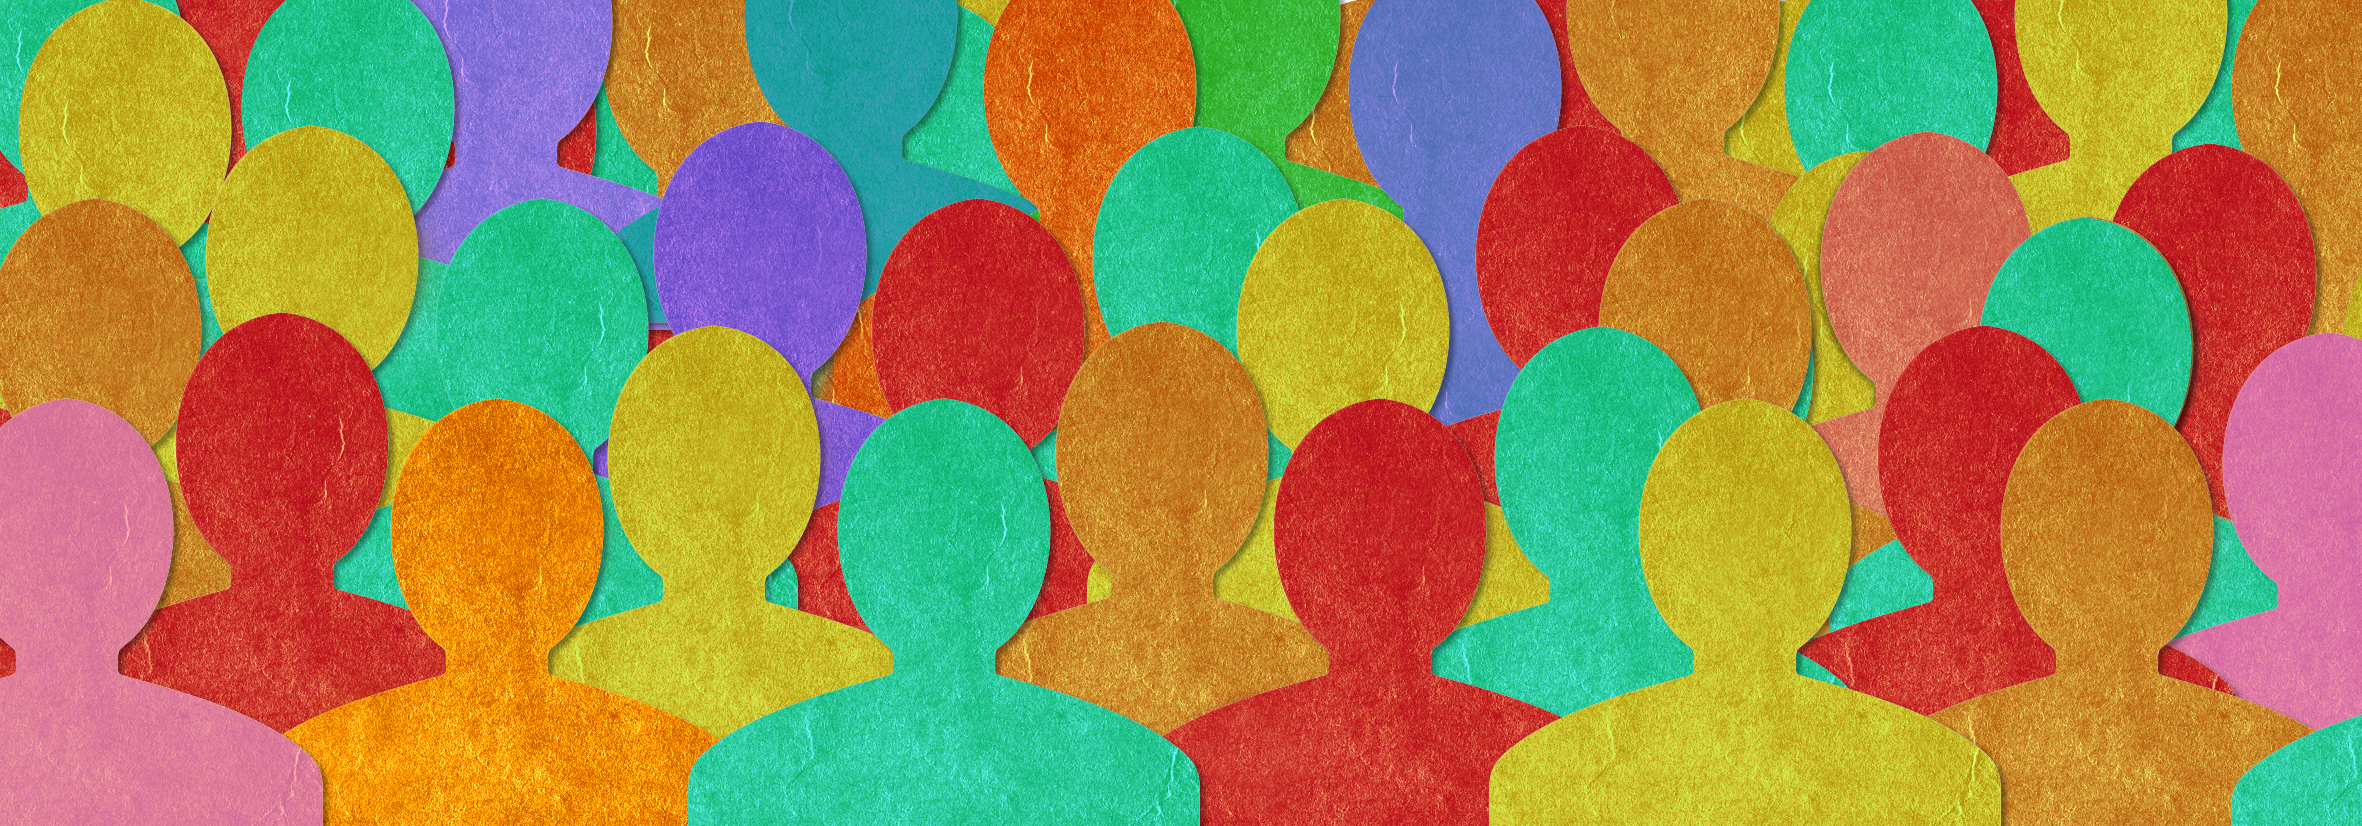 How to take your inclusion strategy to the next level